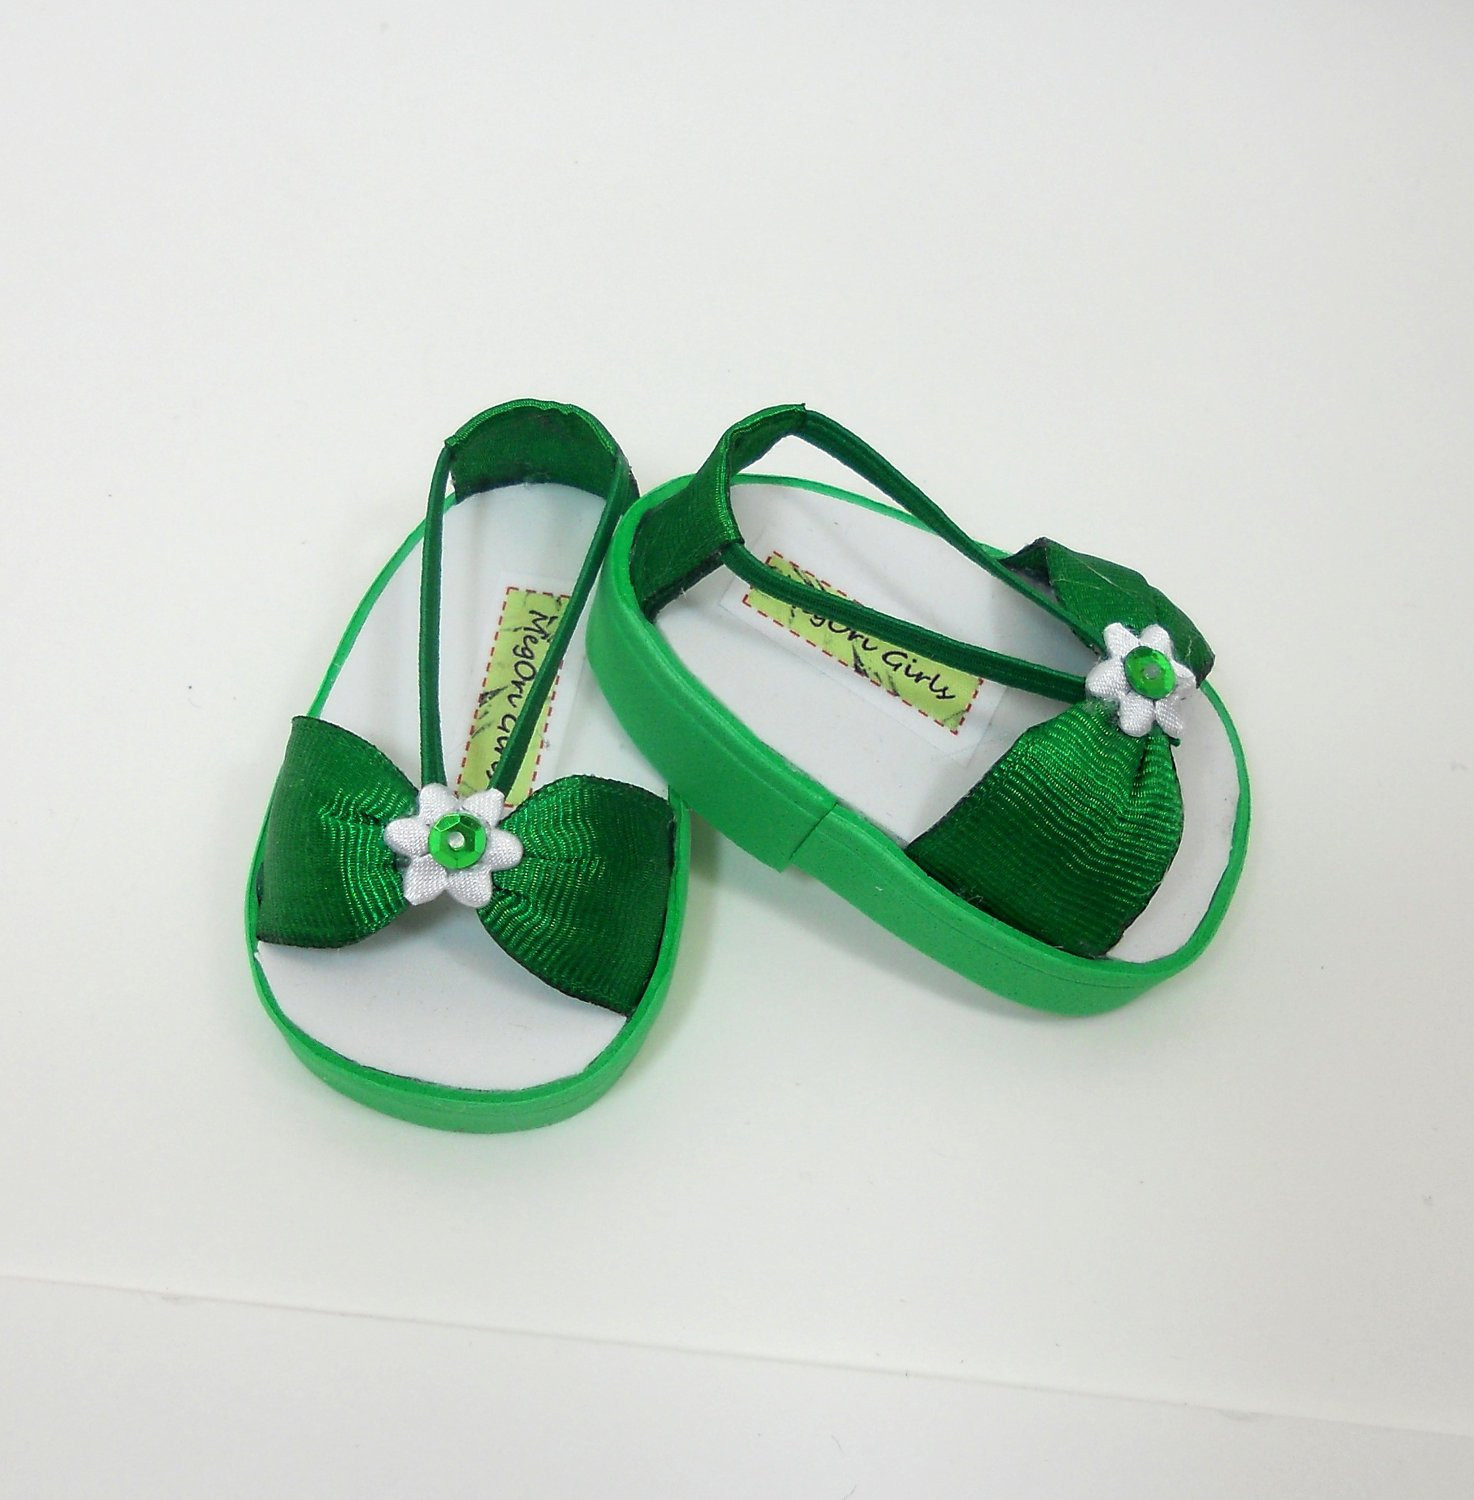 New American Girl Doll Shoes Sandal Amerald Green Christmas Green Ag Doll Shoes Of Superb 49 Photos Ag Doll Shoes